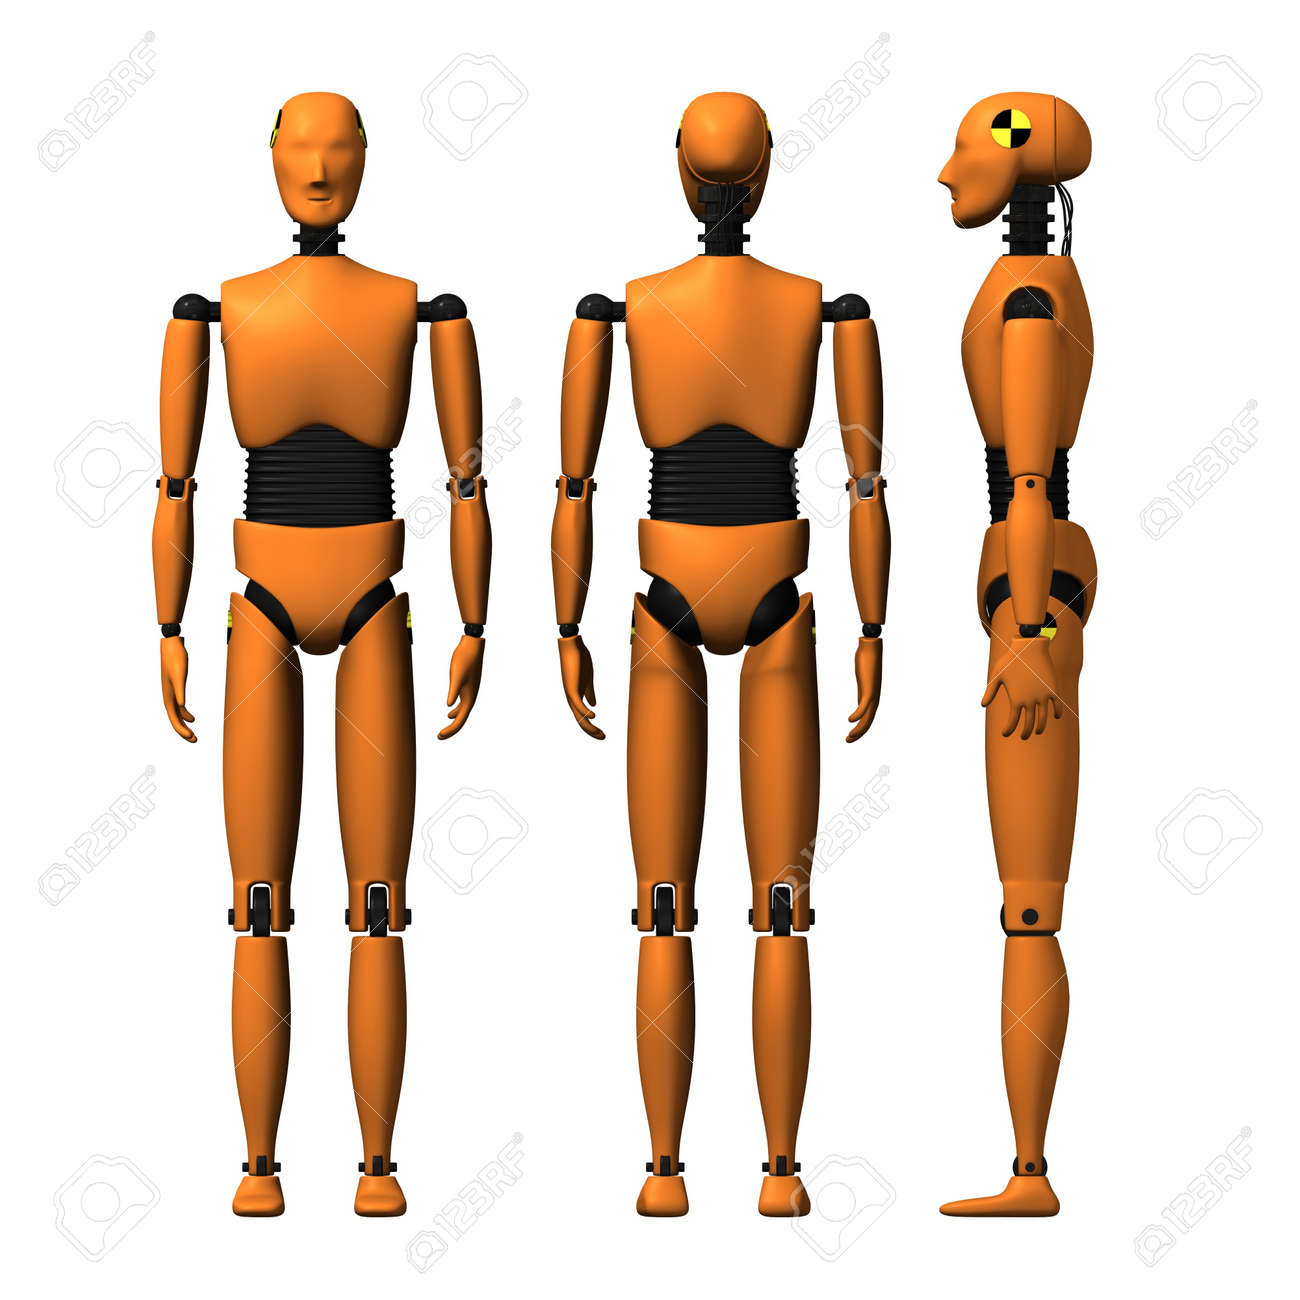 11a1da994065 3d Render Of Car Crash Test Dummy Stock Photo, Picture And Royalty ...